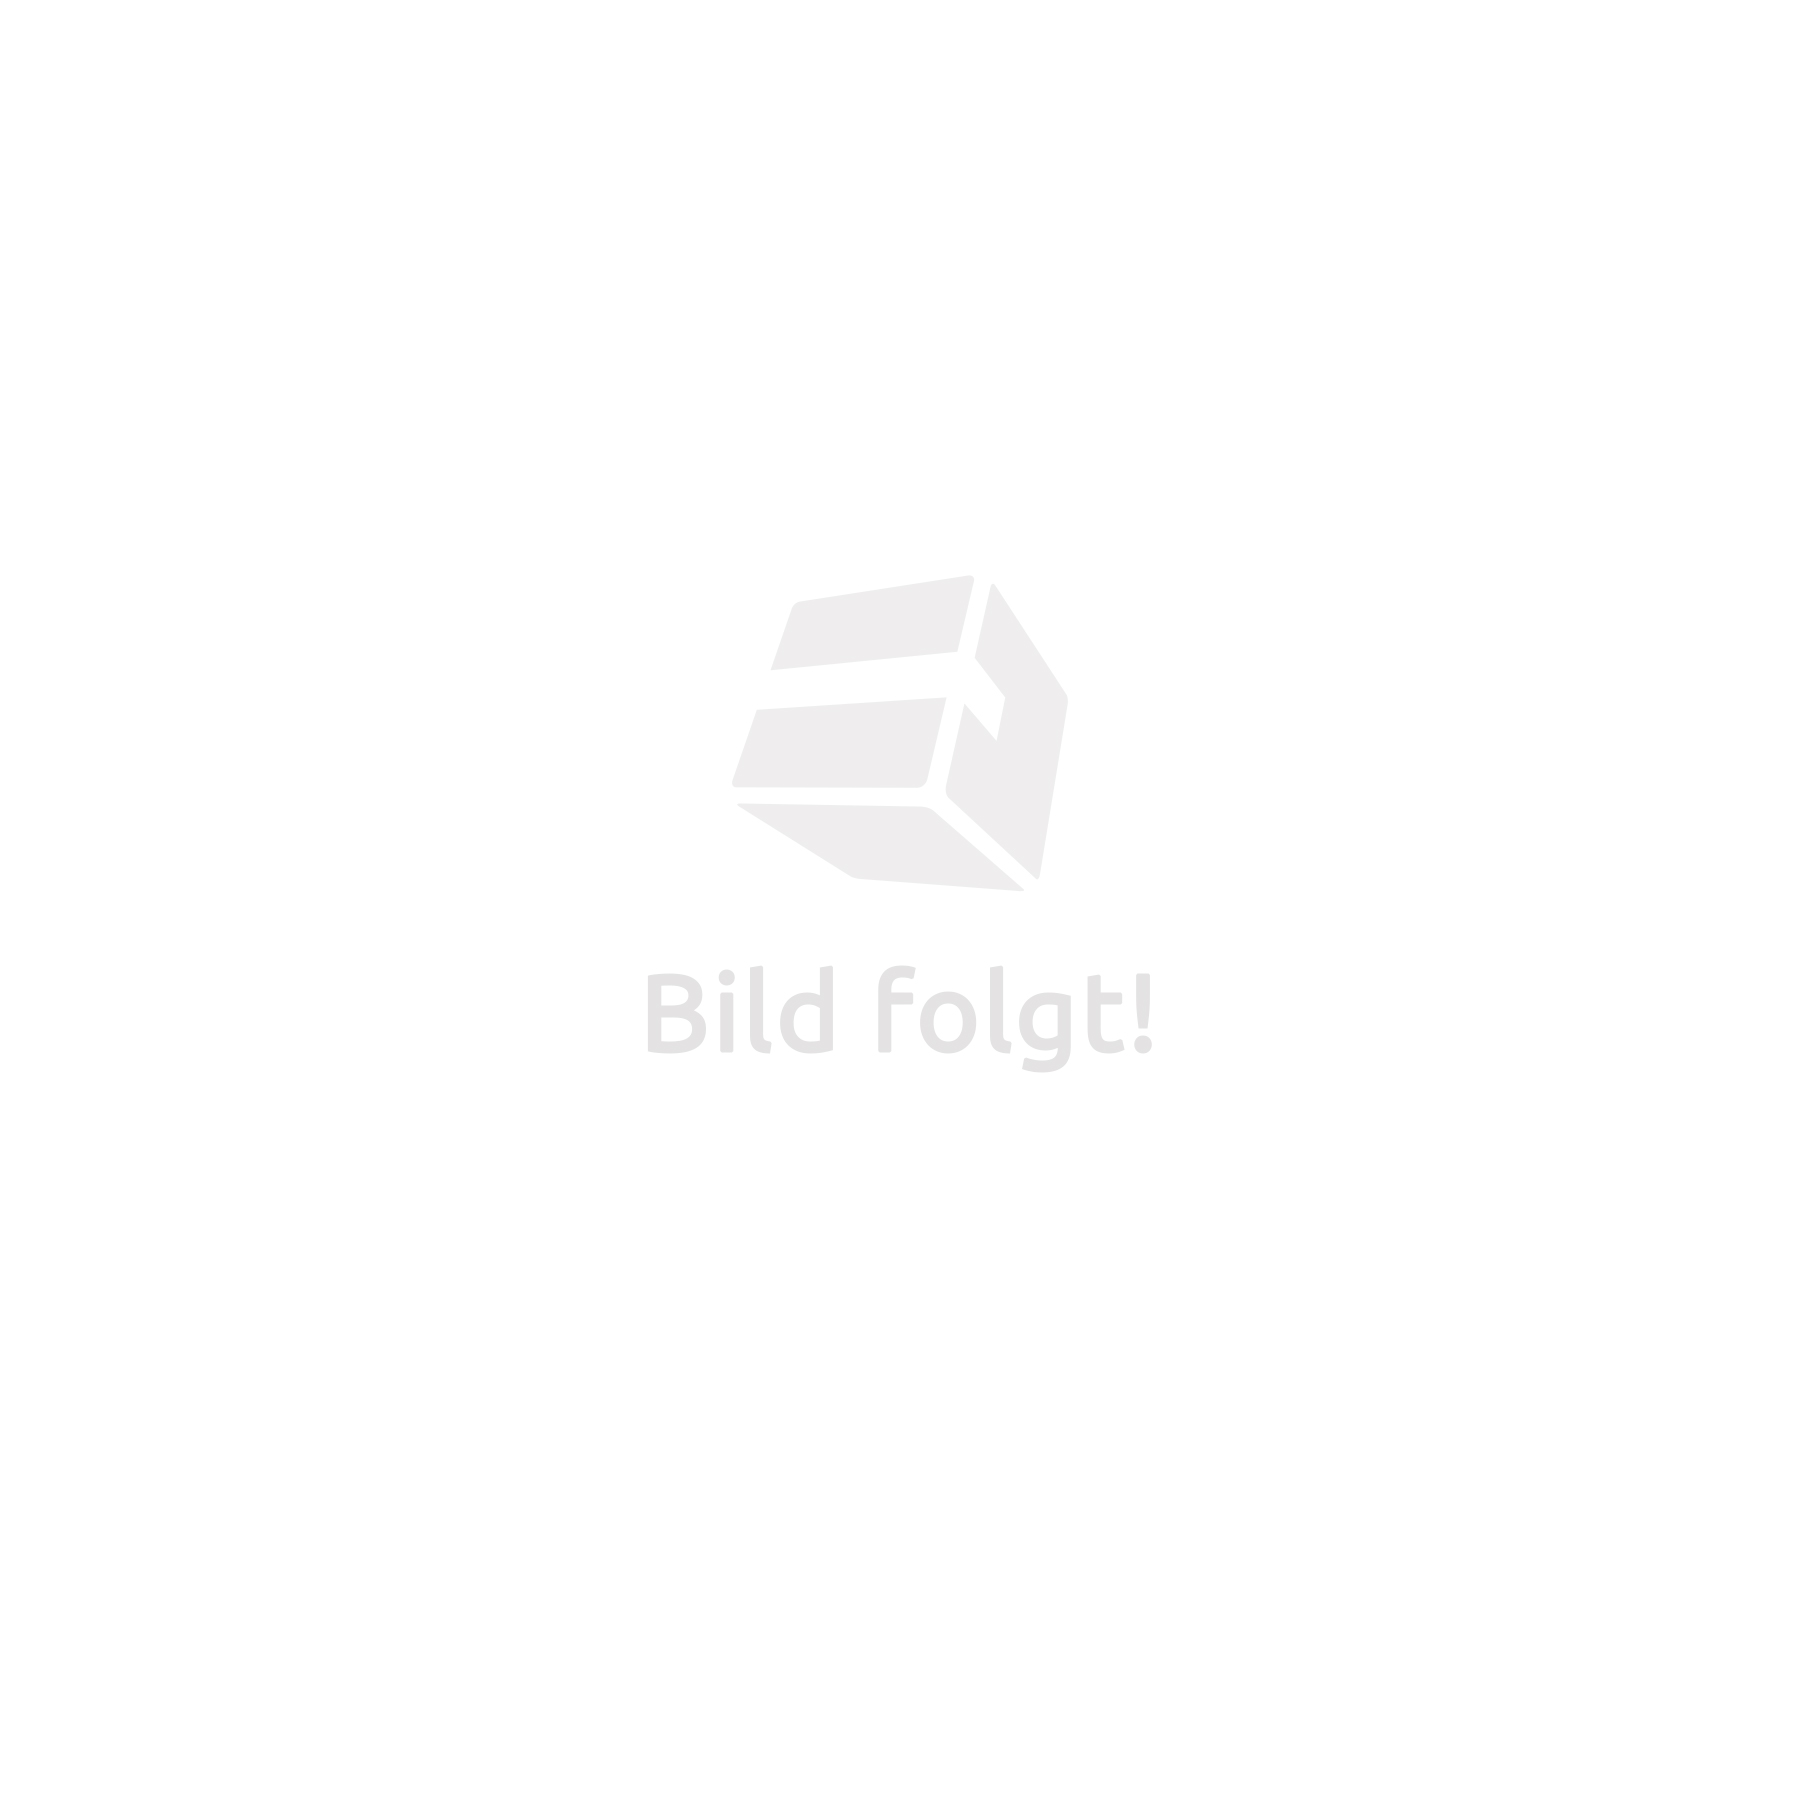 Wooden garden bench eucalyptus wood seat with metal legs for Bancs de jardin en bois